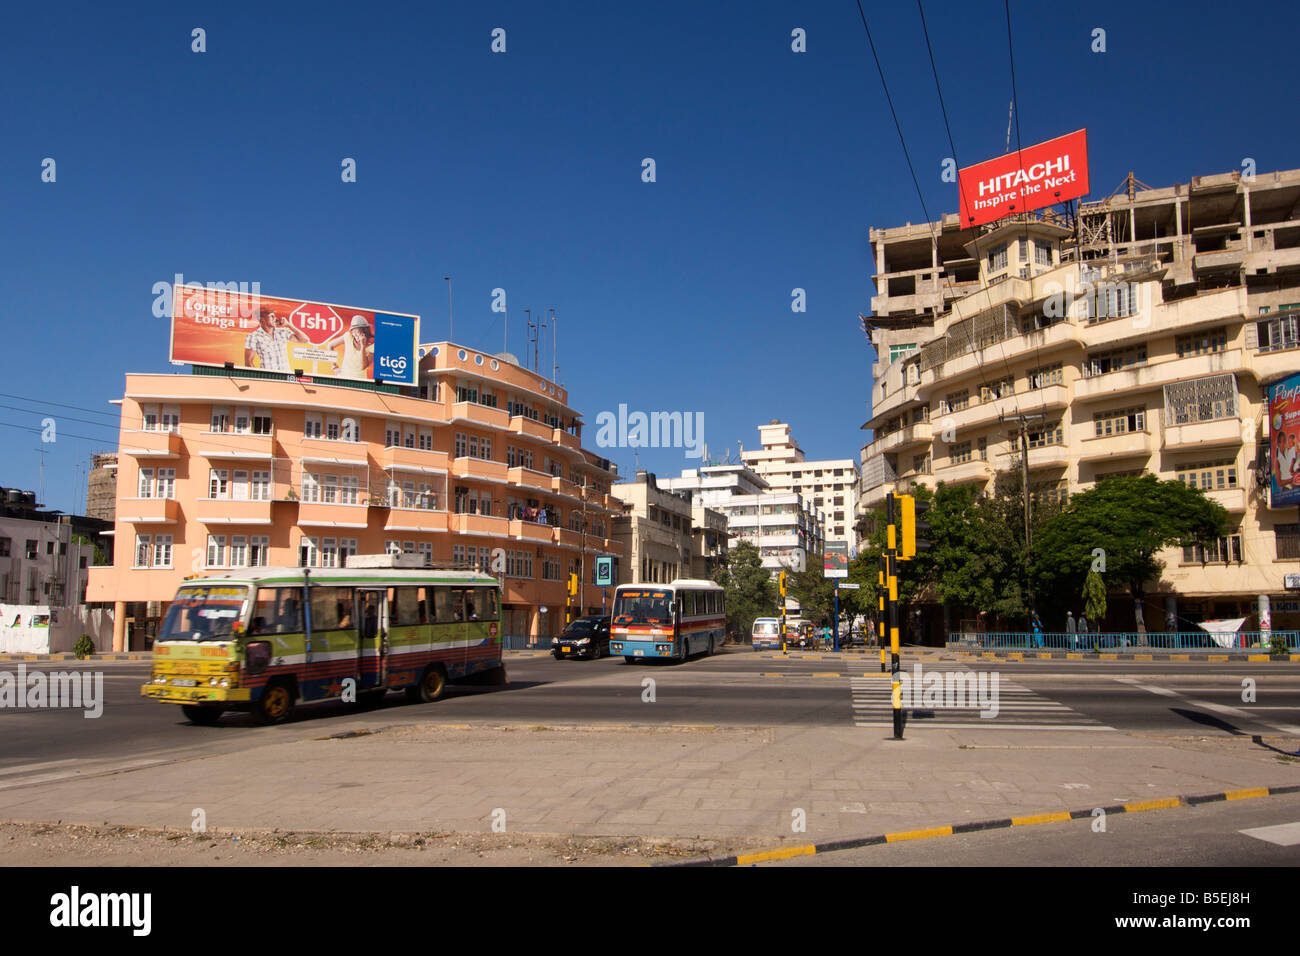 Junction of Bibi Titi Mohammed road and Uhuru road in Dar es Salaam, the capital of Tanzania. - Stock Image